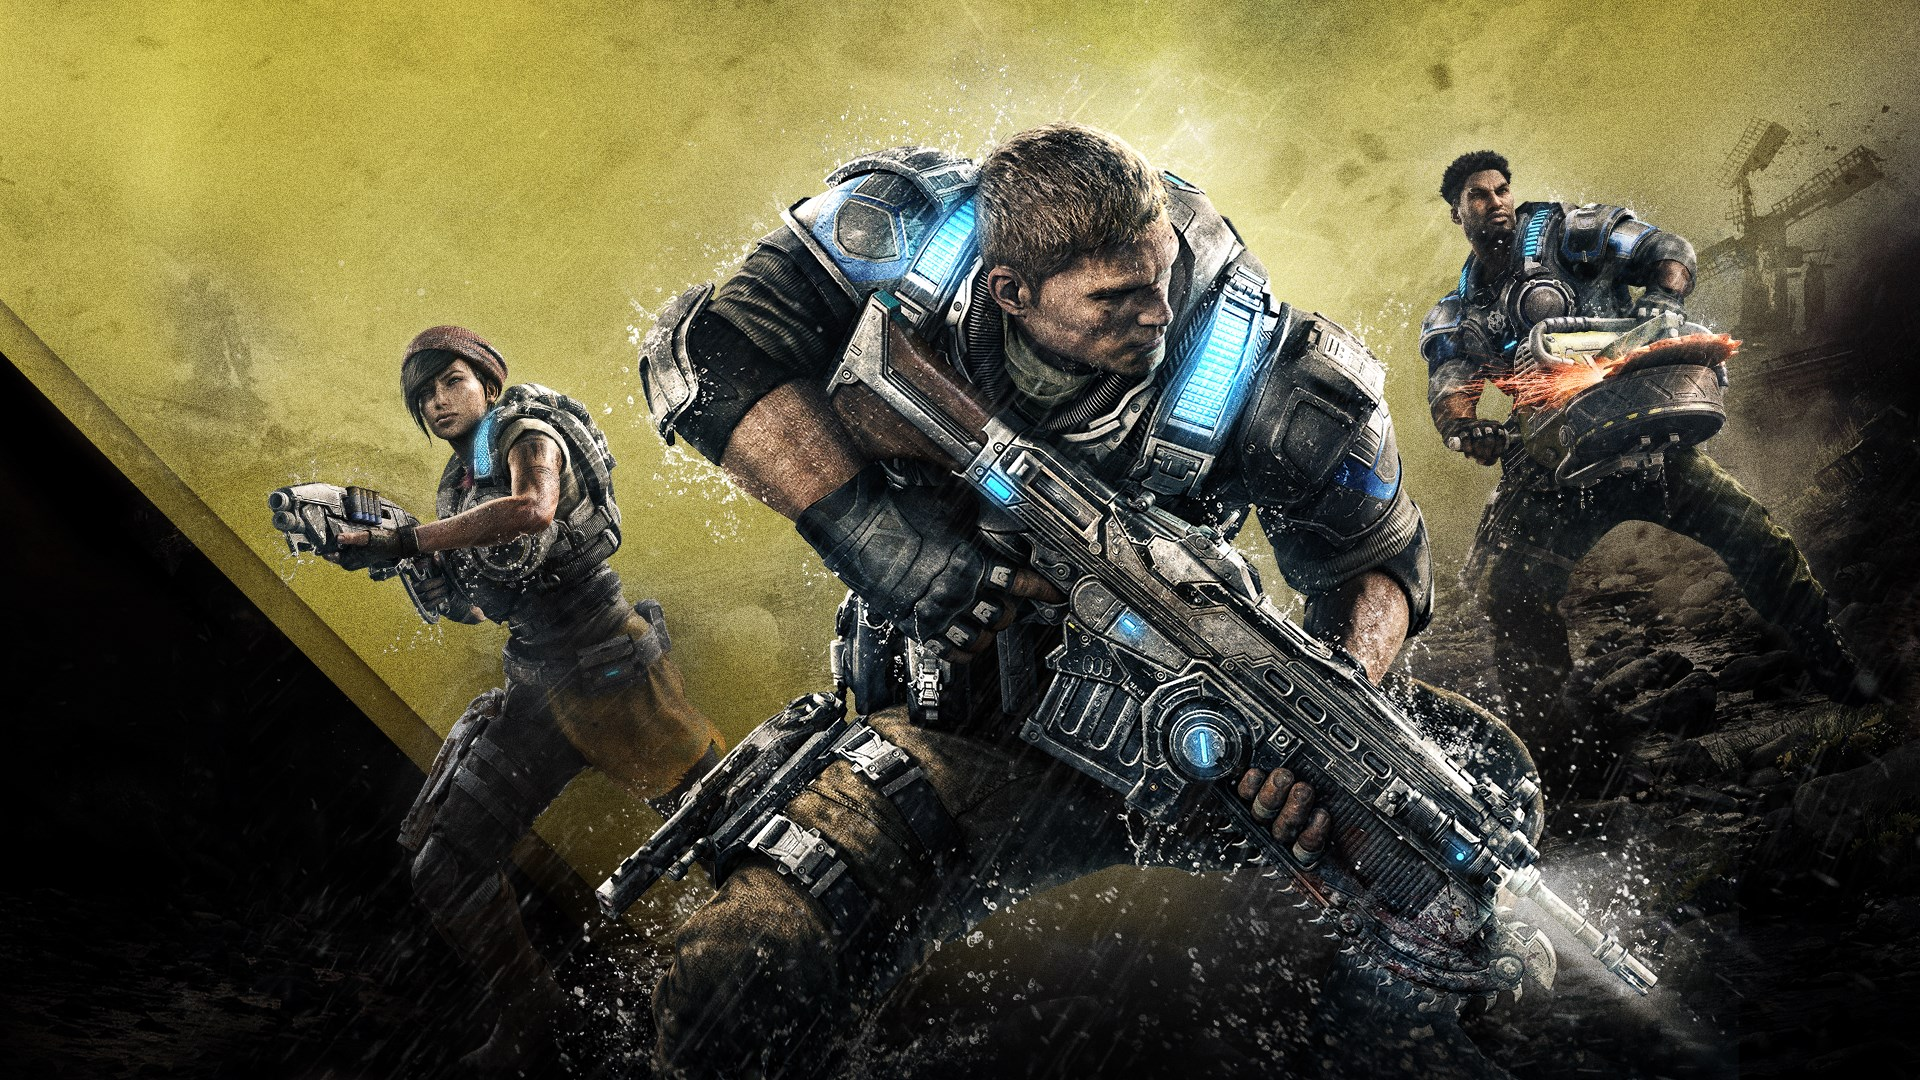 gears of war 4 pc game free download